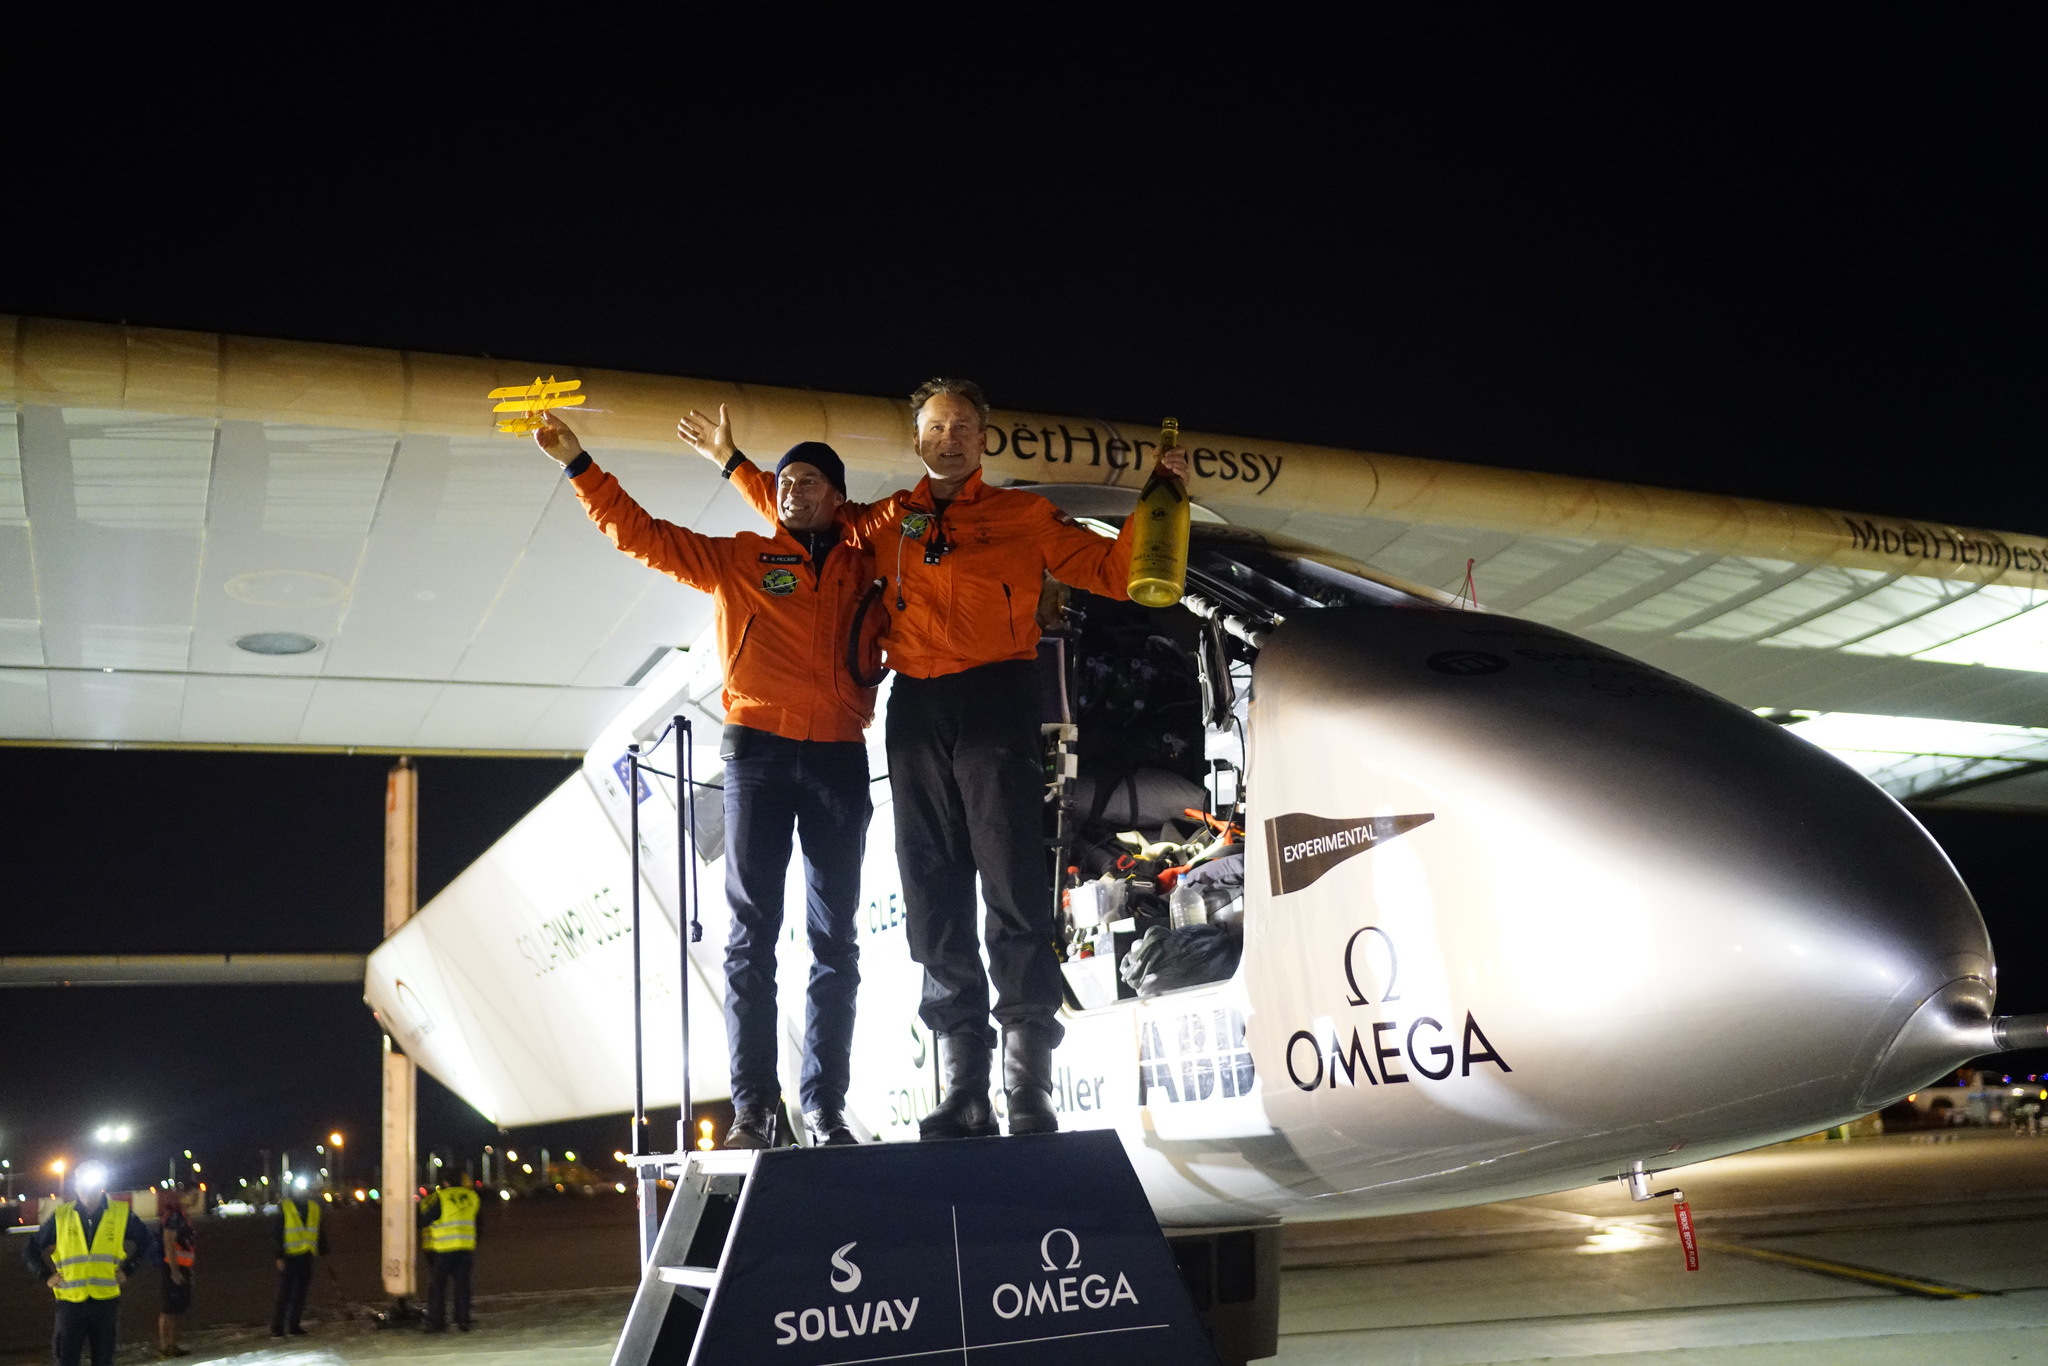 Bertrand Piccard greets André Borschberg in Dayton, Ohio, May 21. Photo courtesy of Solar Impulse.